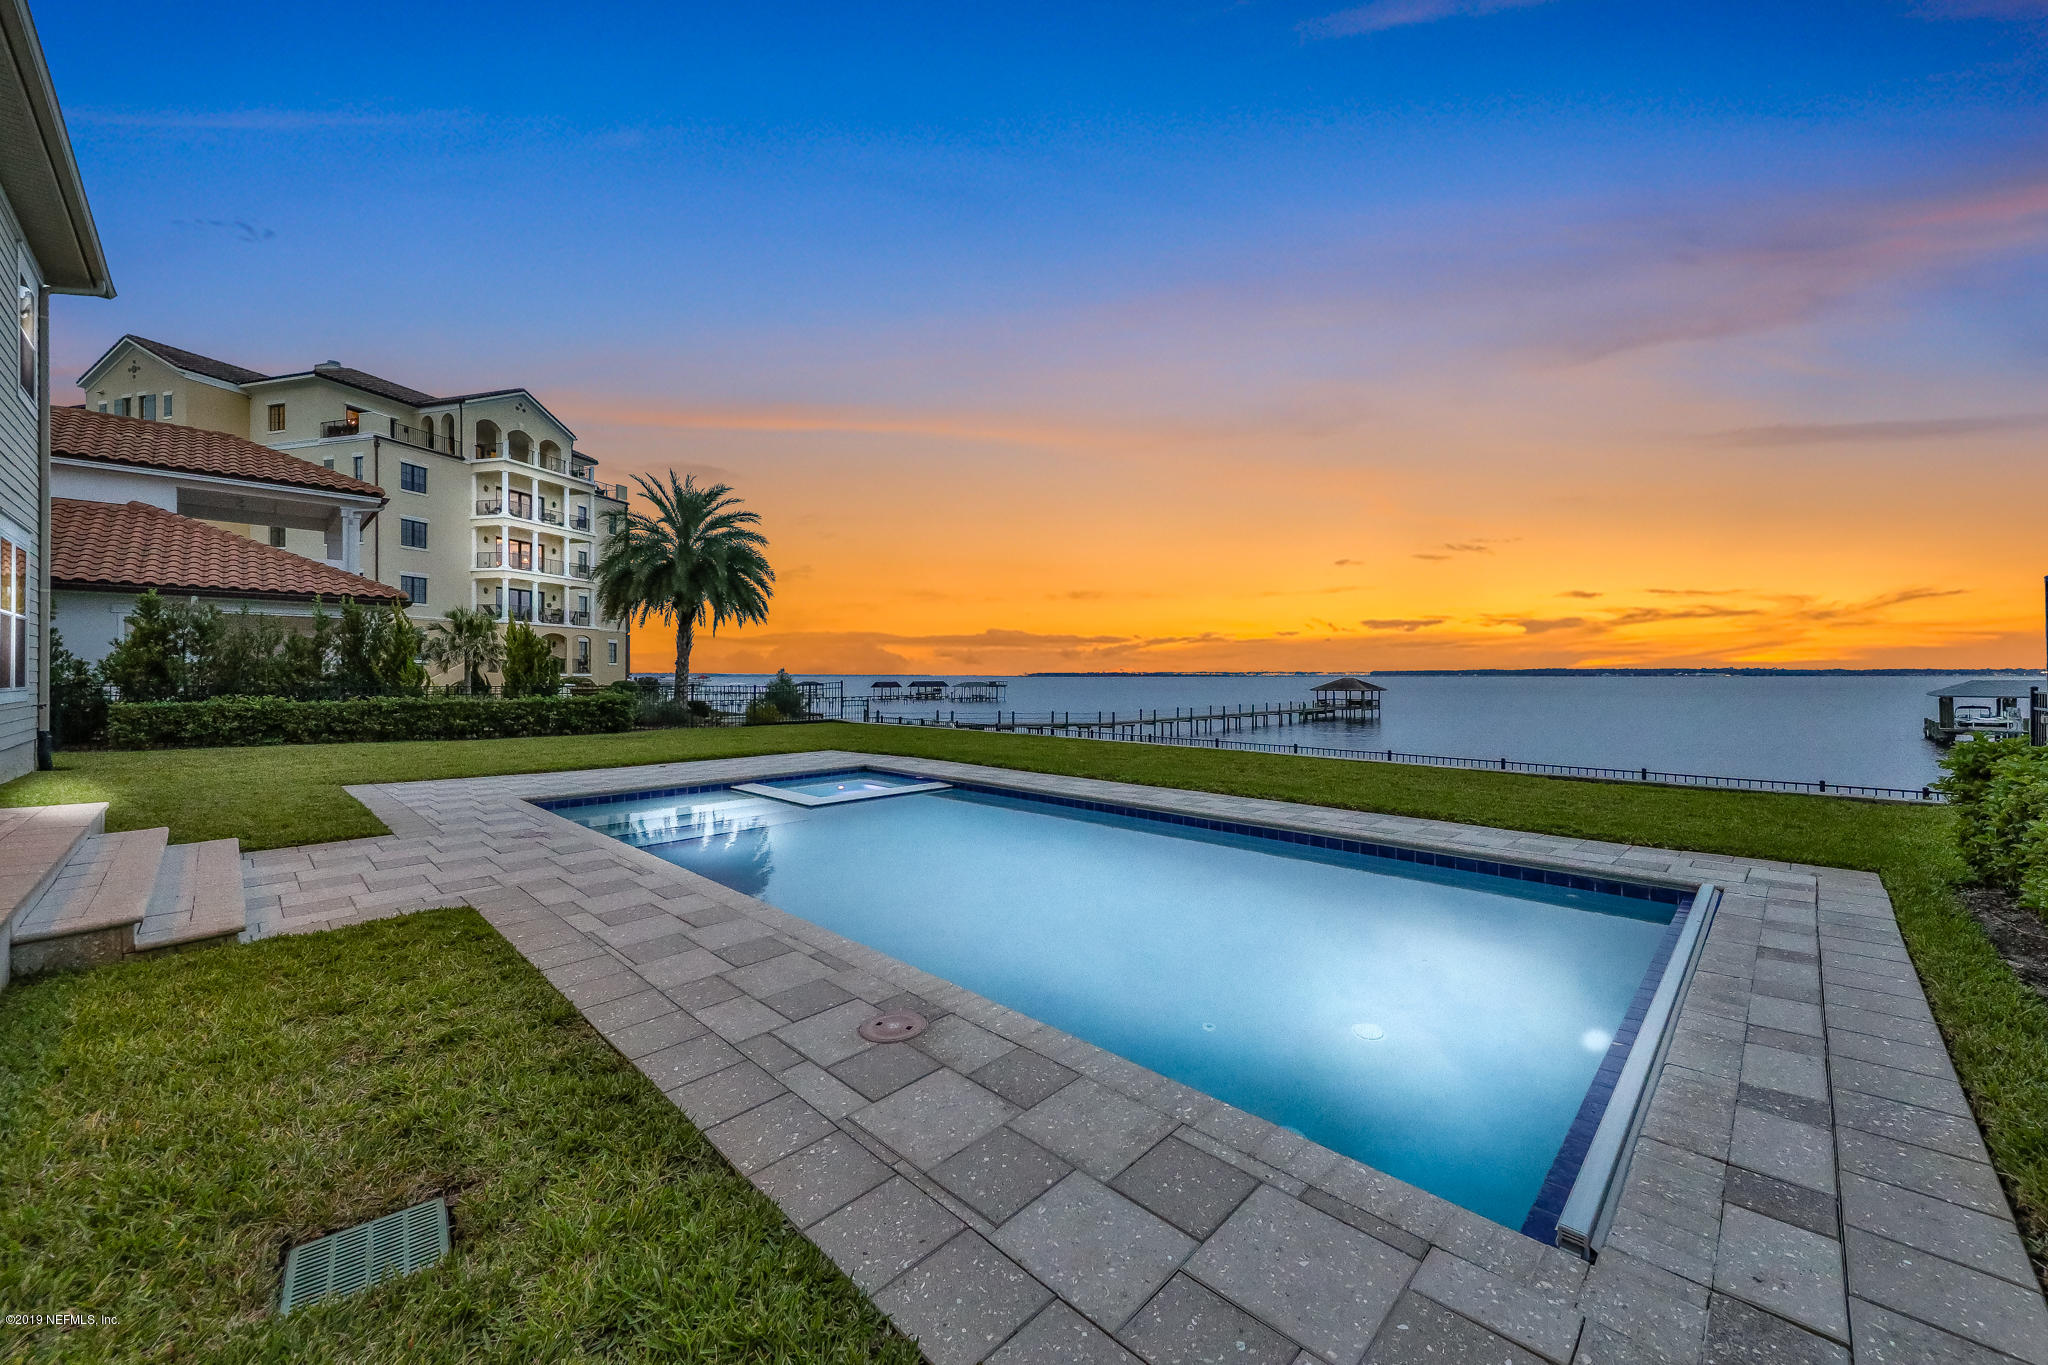 1299 SUNSET VIEW, JACKSONVILLE, FLORIDA 32207, 4 Bedrooms Bedrooms, ,4 BathroomsBathrooms,Residential - single family,For sale,SUNSET VIEW,1021461